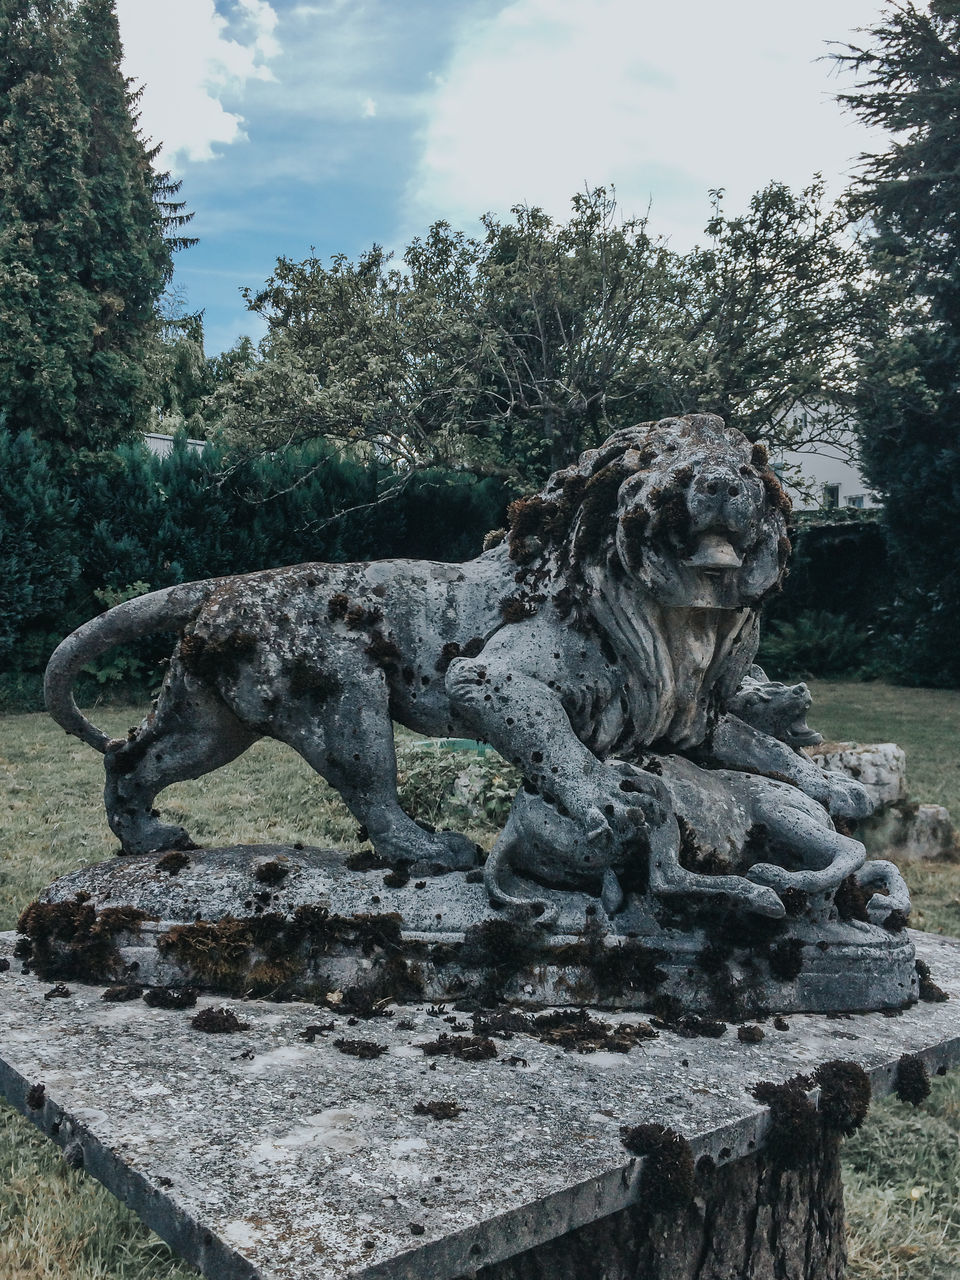 sculpture, statue, art and craft, outdoors, day, no people, tree, sky, nature, gargoyle, water, animal themes, close-up